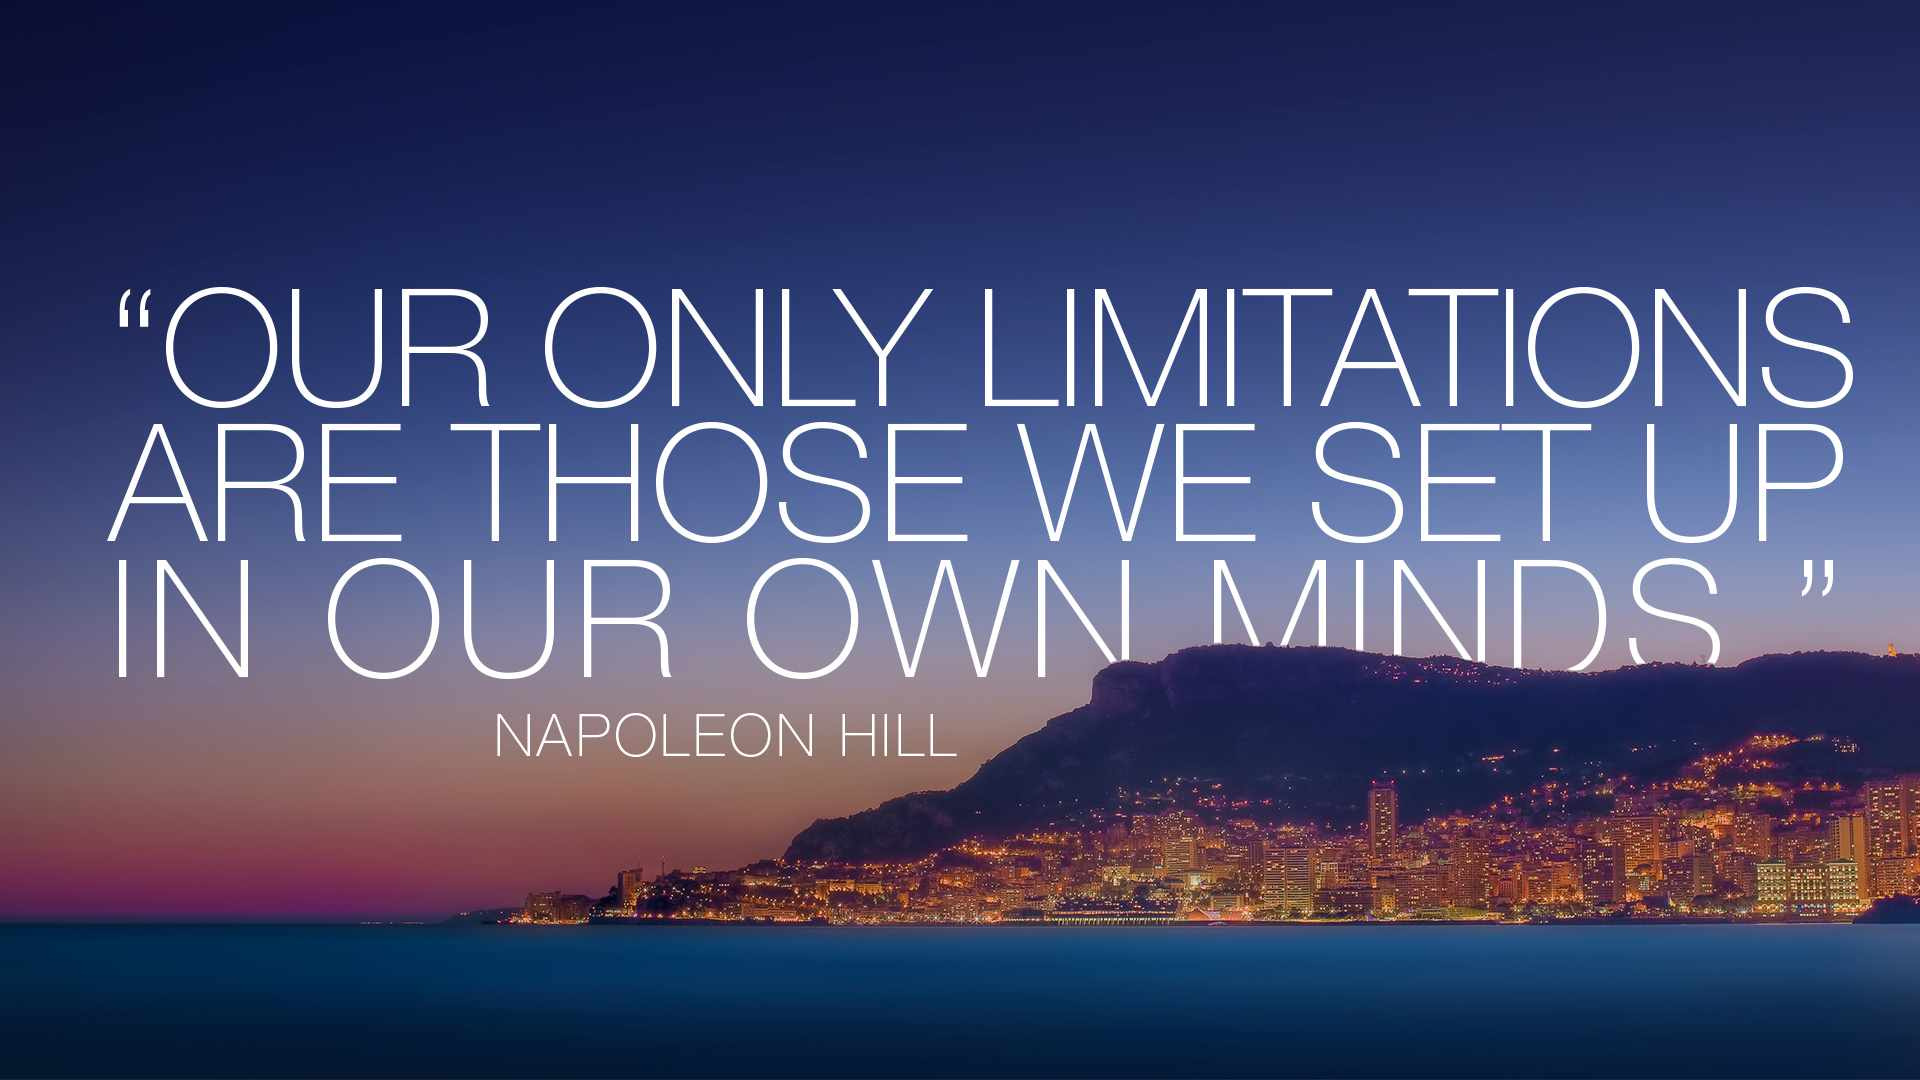 Our only limitations are those we set up in our own minds. Napoleon Hill